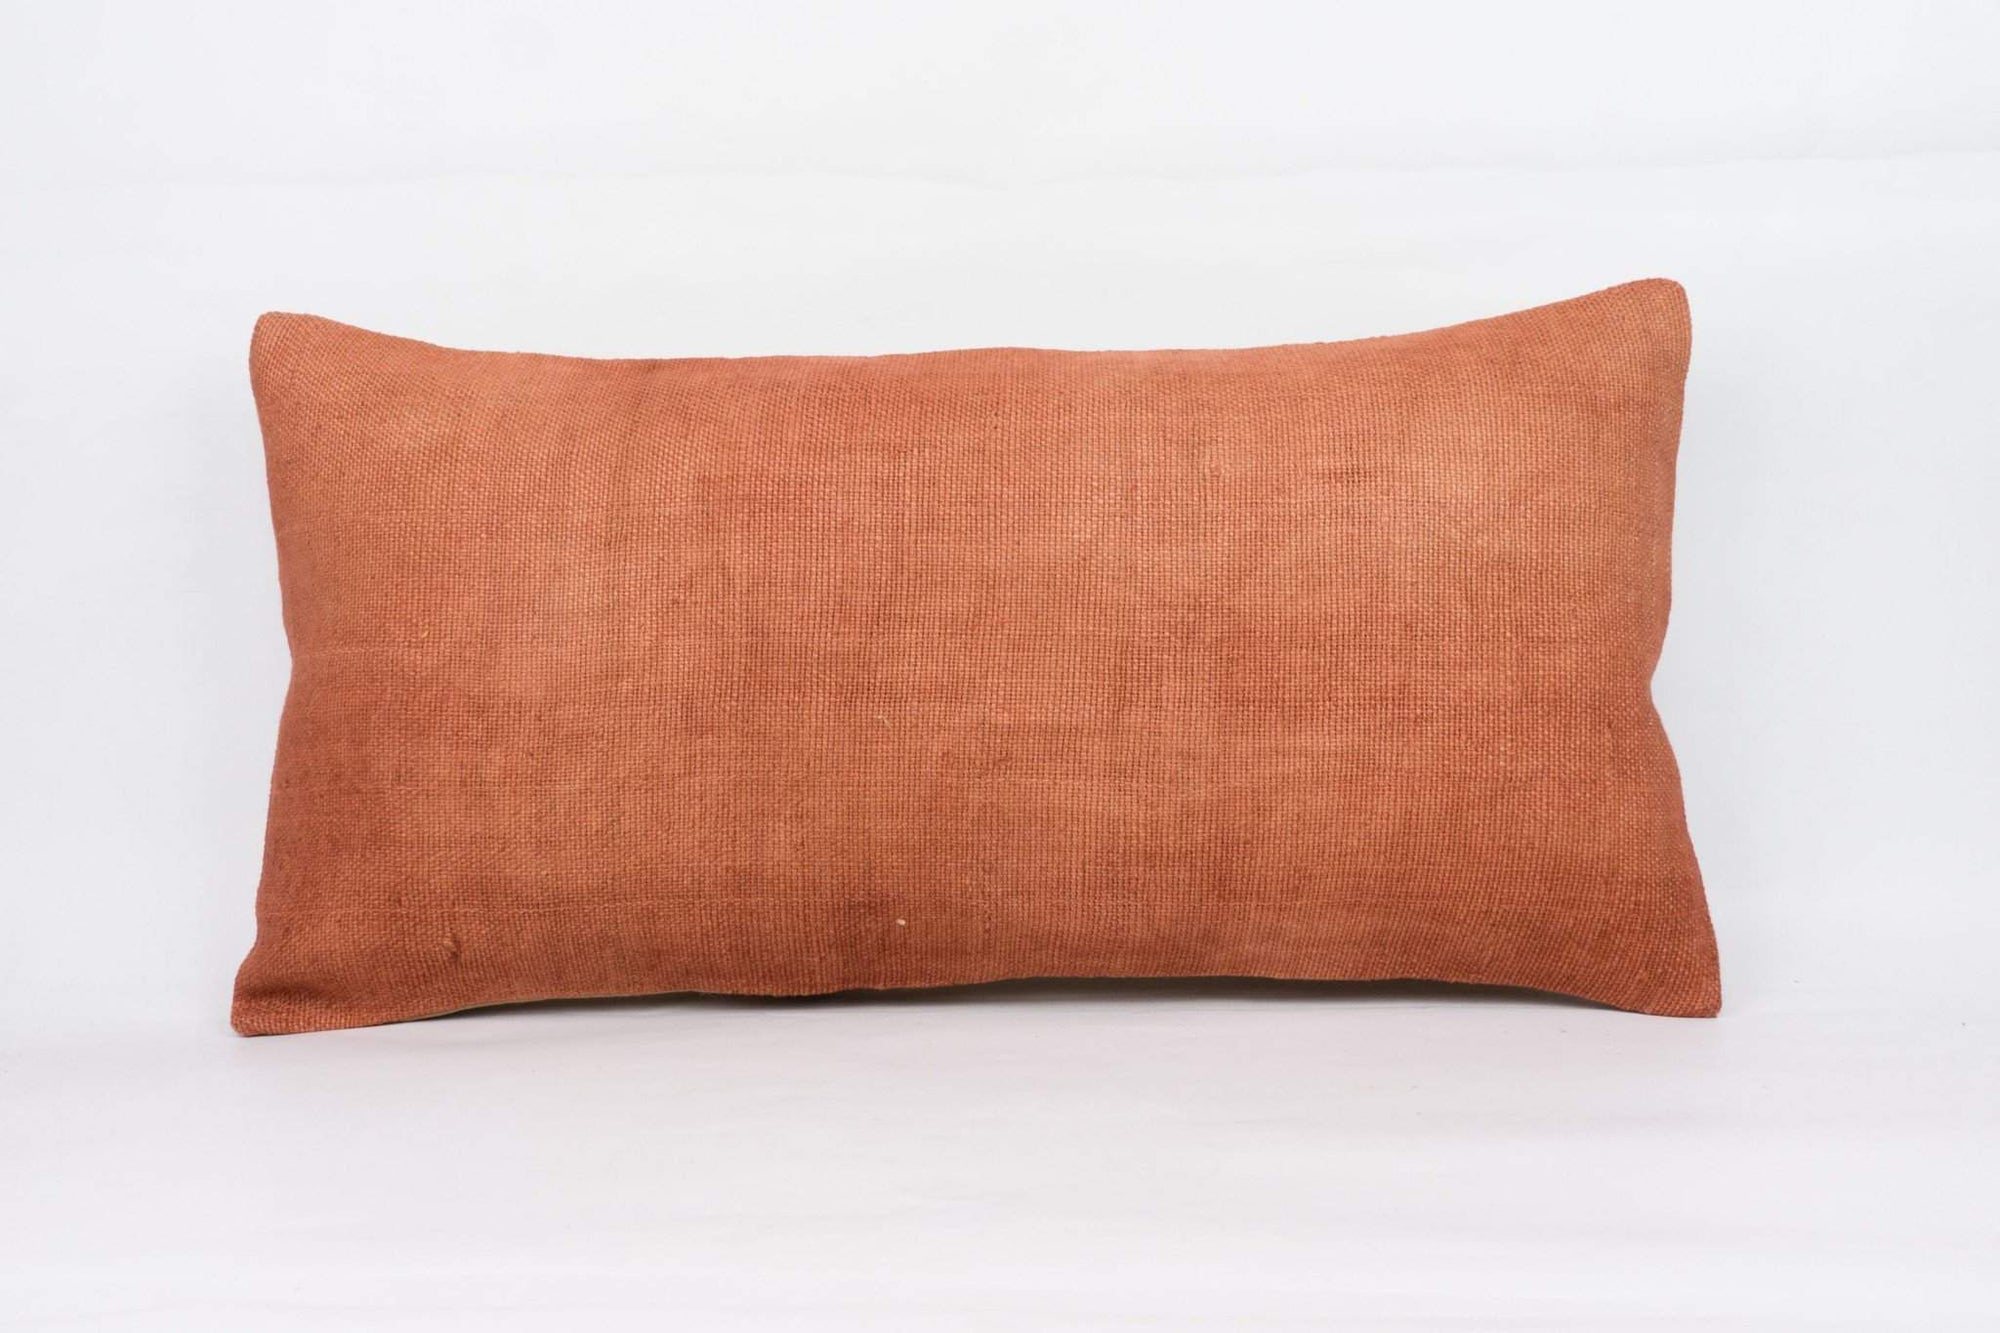 Plain Brown Kilim Pillow Cover 12x24 4198 - kilimpillowstore  - 1